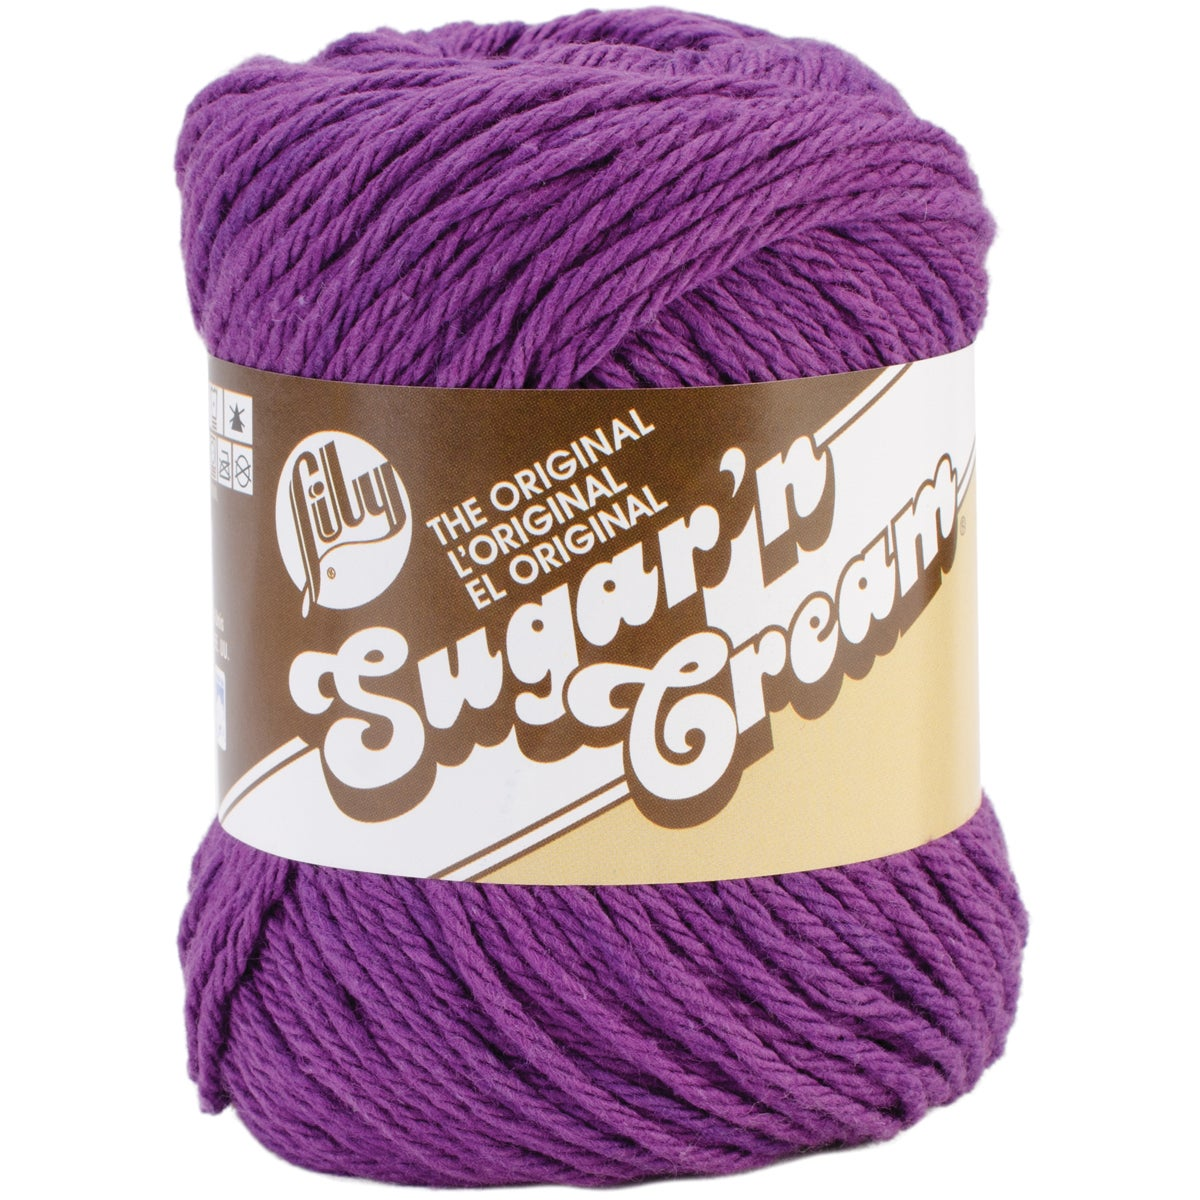 Sugar'n Cream Yarn - Solids-Black Currant (Black Currant)...